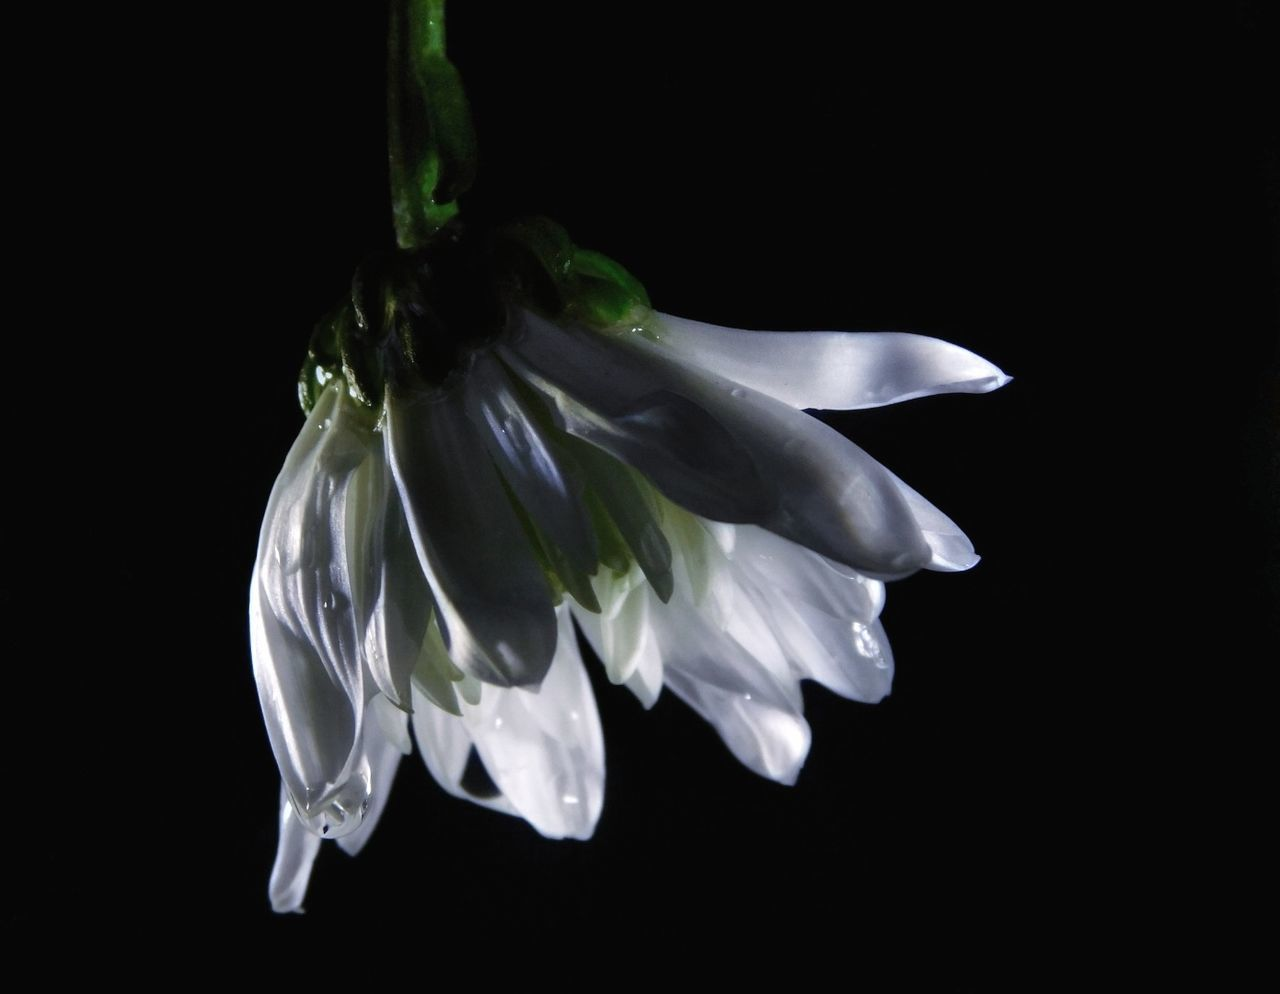 Close-Up Of Wet White Flower Against Black Background